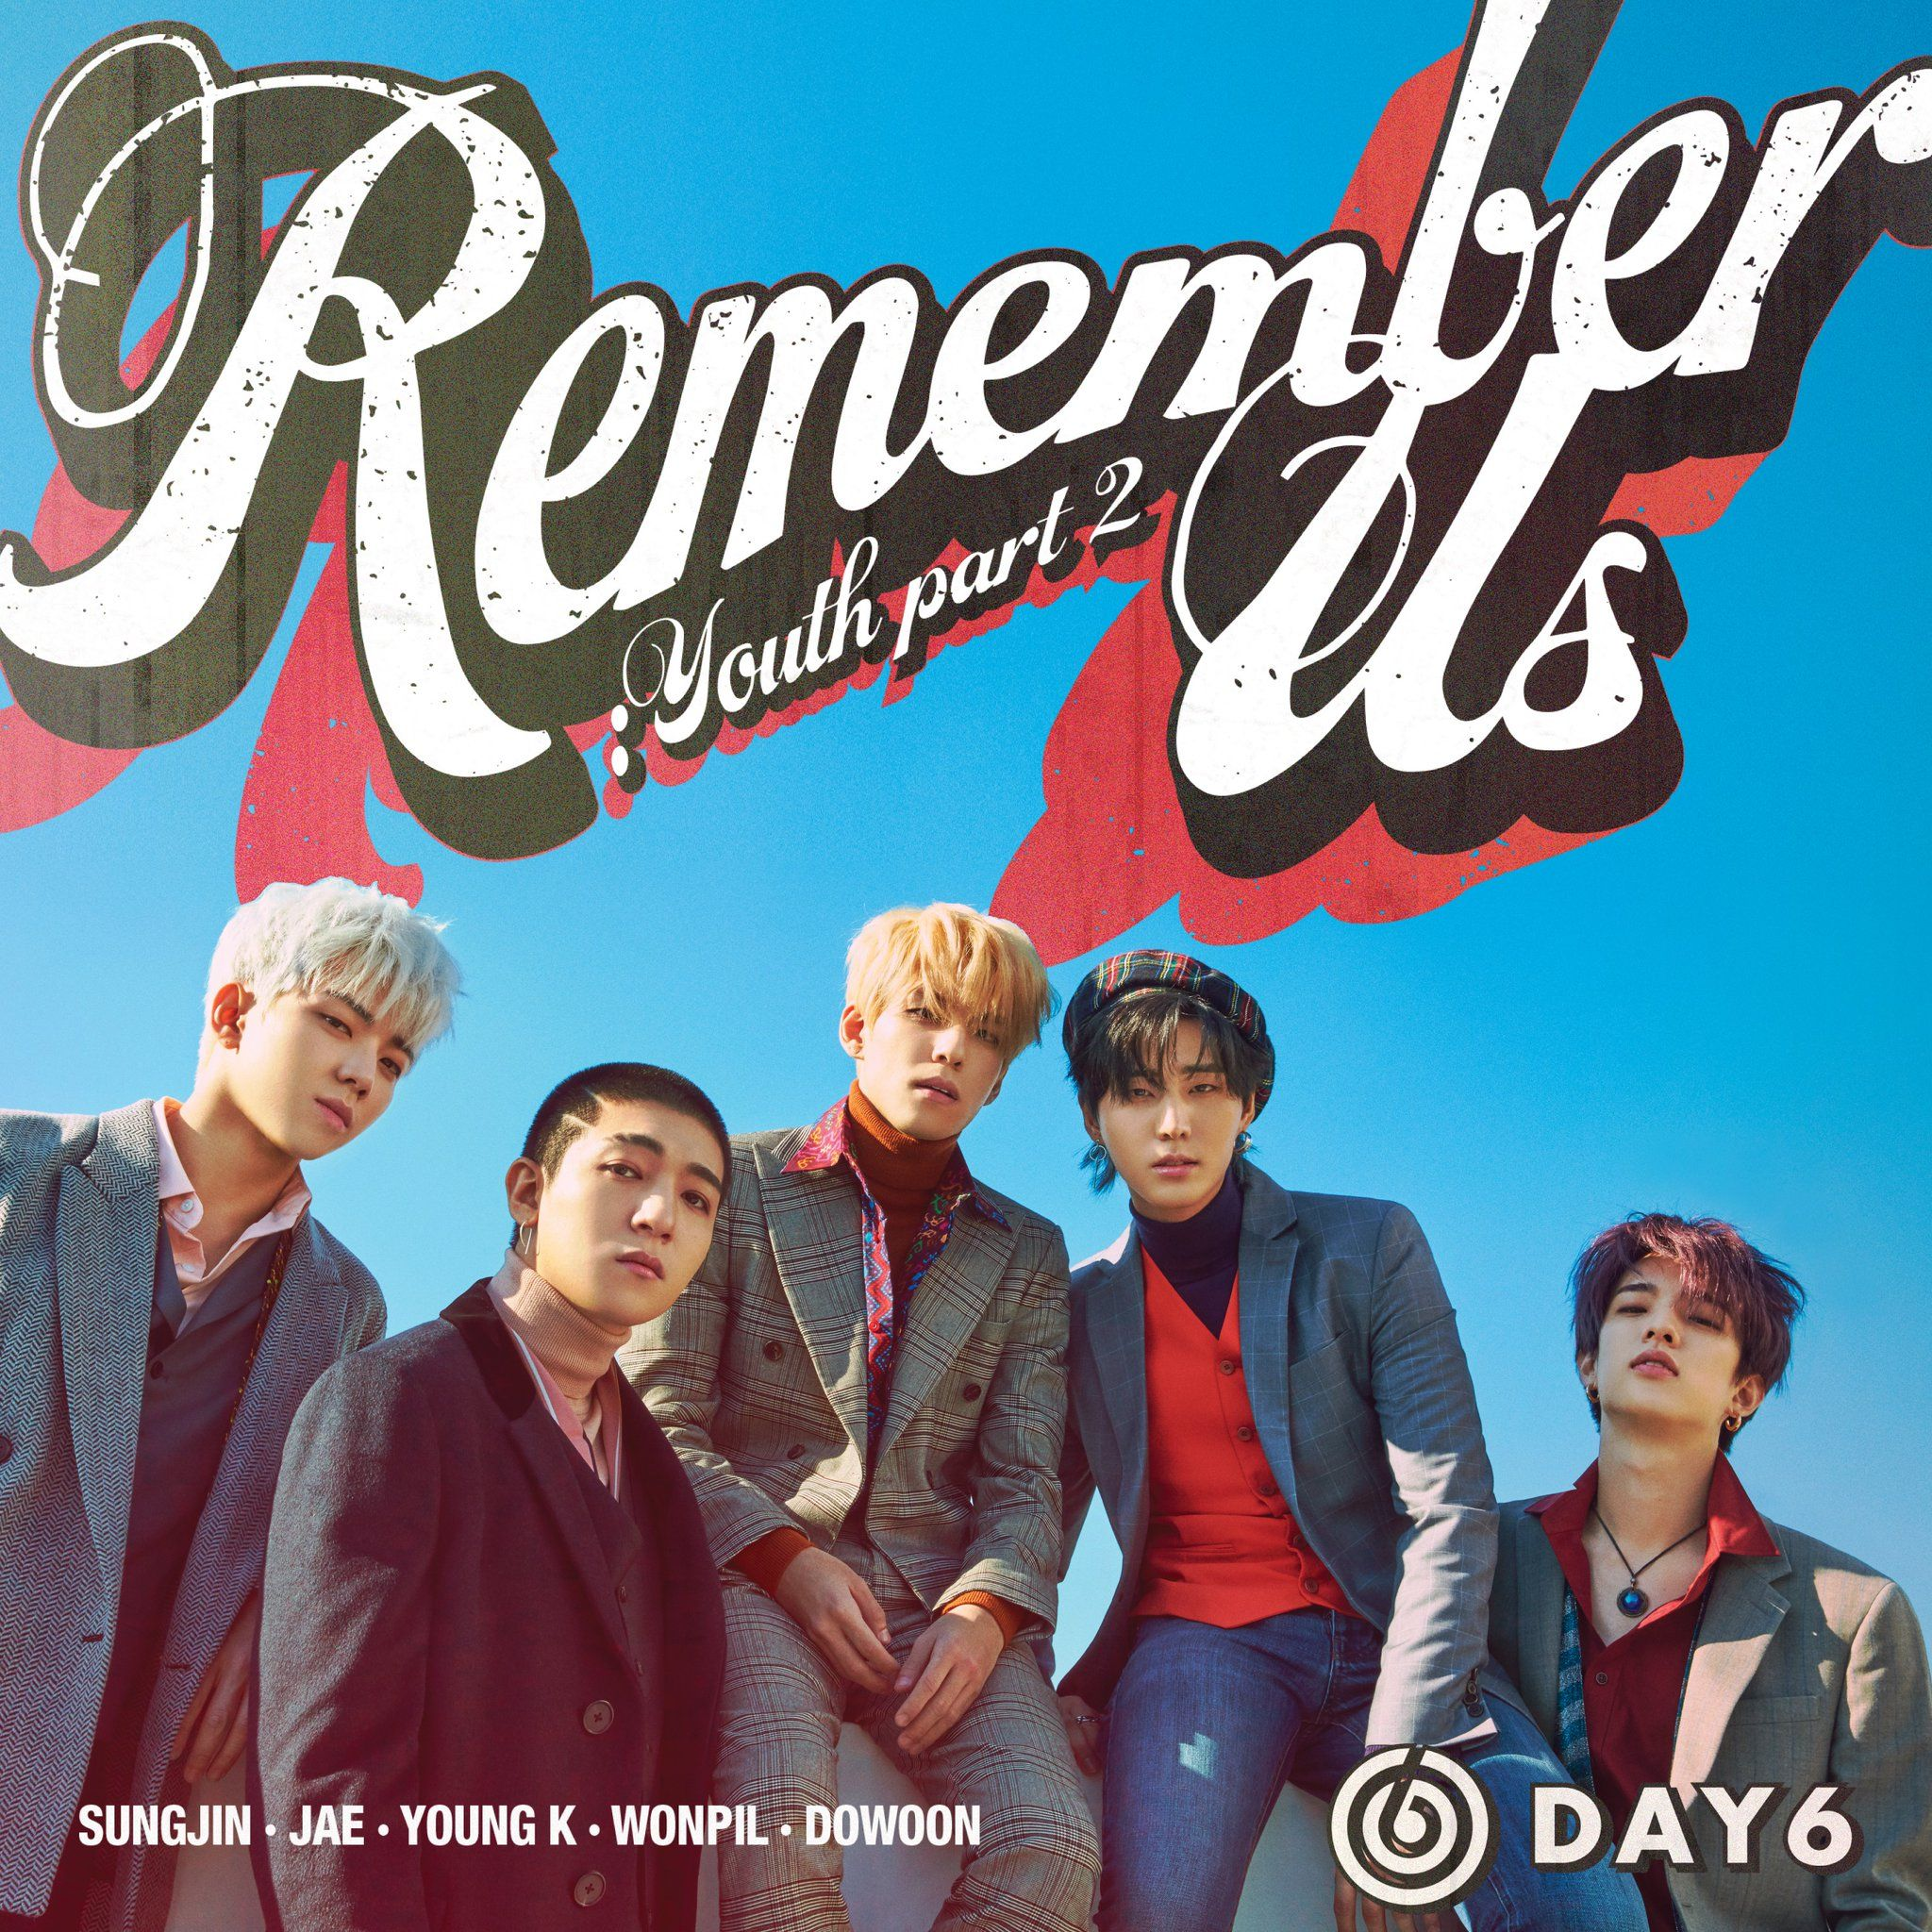 DAY6 on Twitter | Album covers, Music album cover, Day6